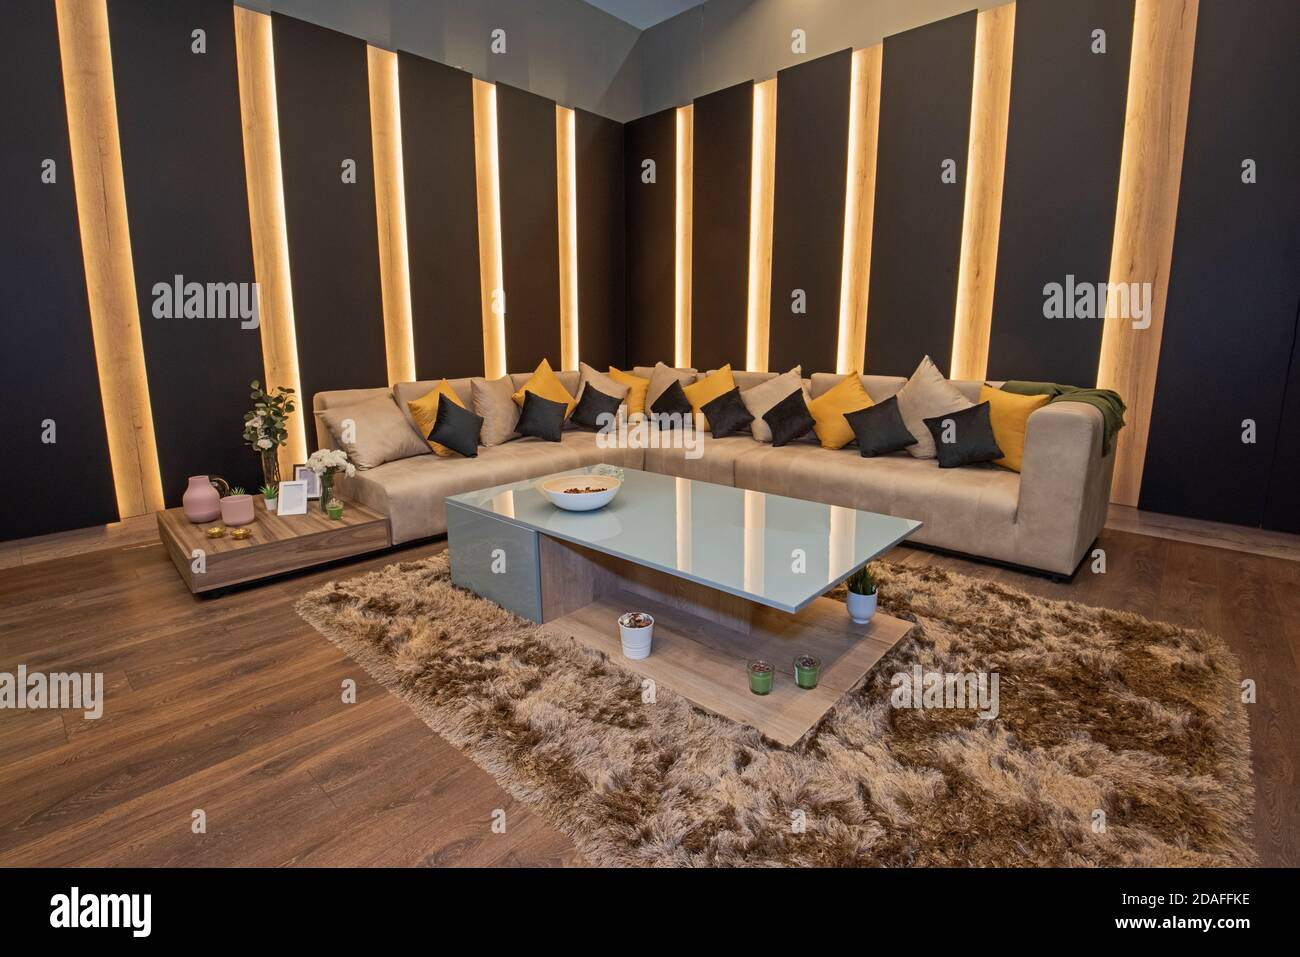 Living Room Lounge Area In Luxury Apartment Show Home Showing Interior Design Decor Furnishing With Large Sofa Stock Photo Alamy